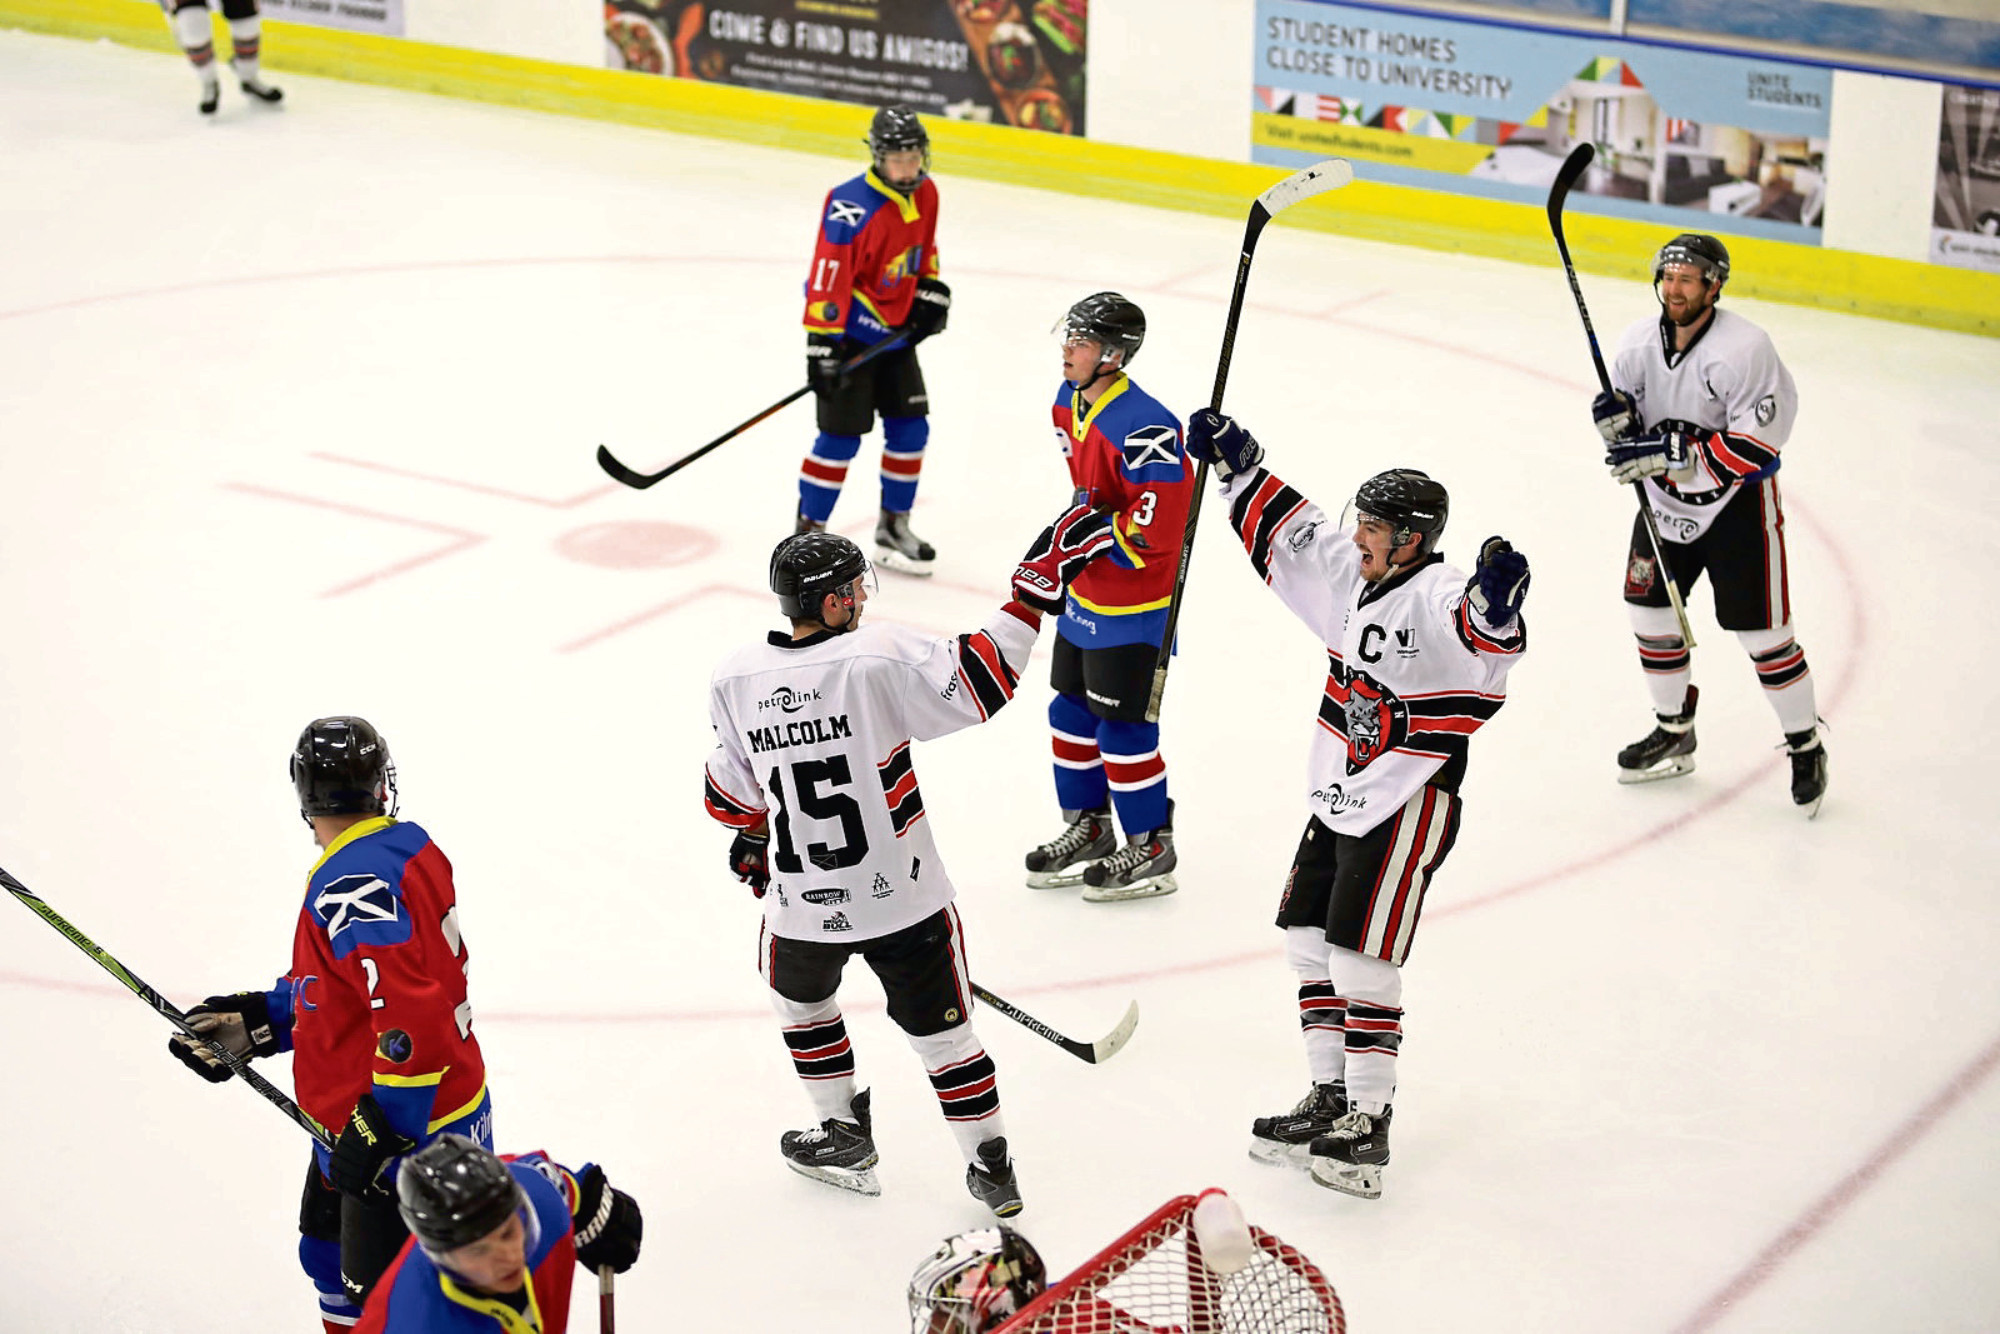 The Lynx, in white, will play Solway Sharks home and away.